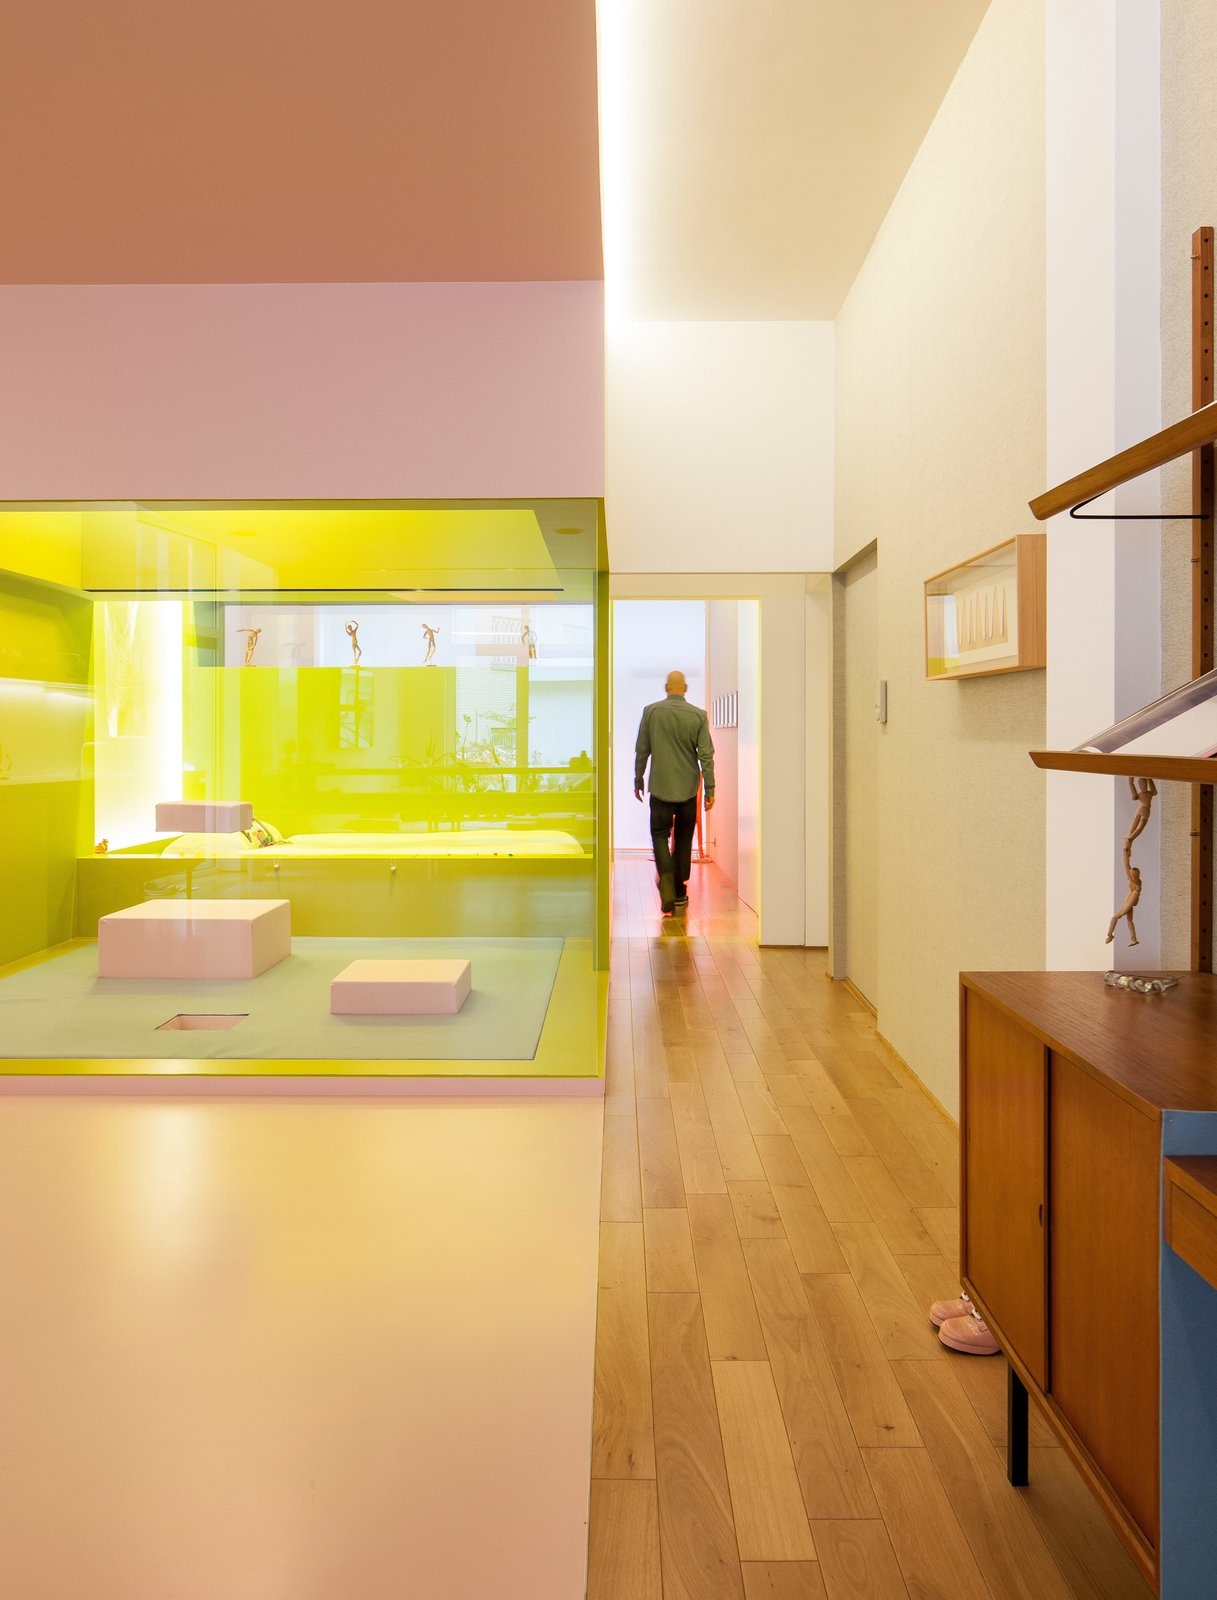 #interior #design #interiordesign #yellow #pink #neon #neonyellow #pastel #glass #glasspartition #atmospheric #glow #renovation #warehouse #apartment #loft #spacious #lighting #bright #brightcolors #design #modern #inside #woodfloor #woodfurniture #whitewall   36+ Interior Color Pop Ideas For Modern Homes by Dwell